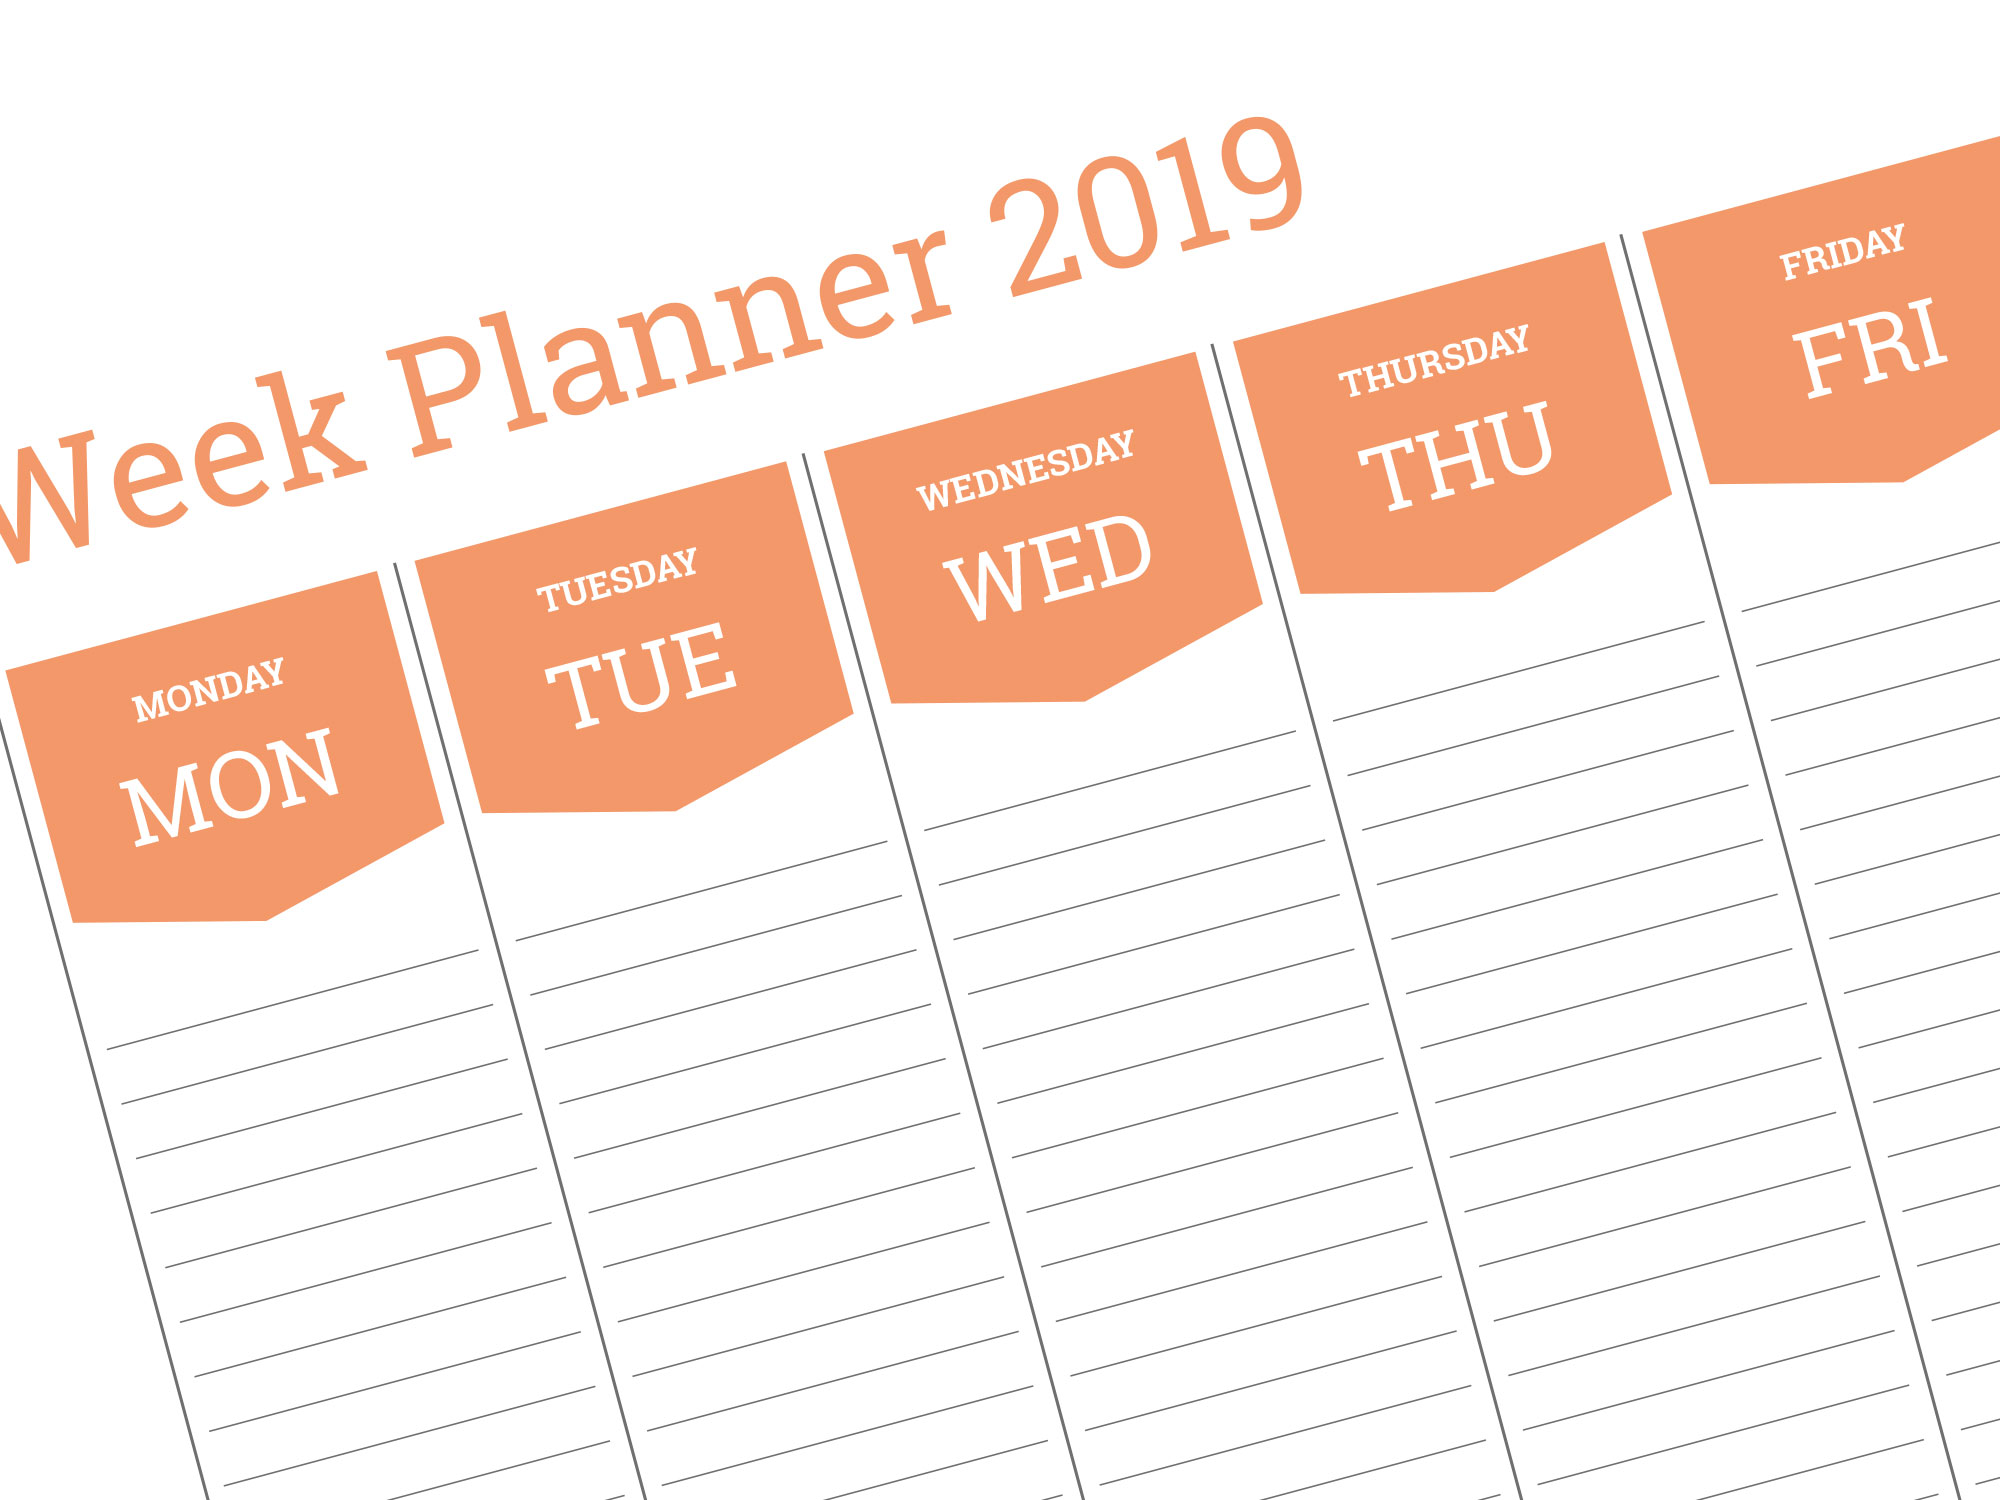 Weekly Planner Template 2019 A3 A2 A1 Size Pdf Format